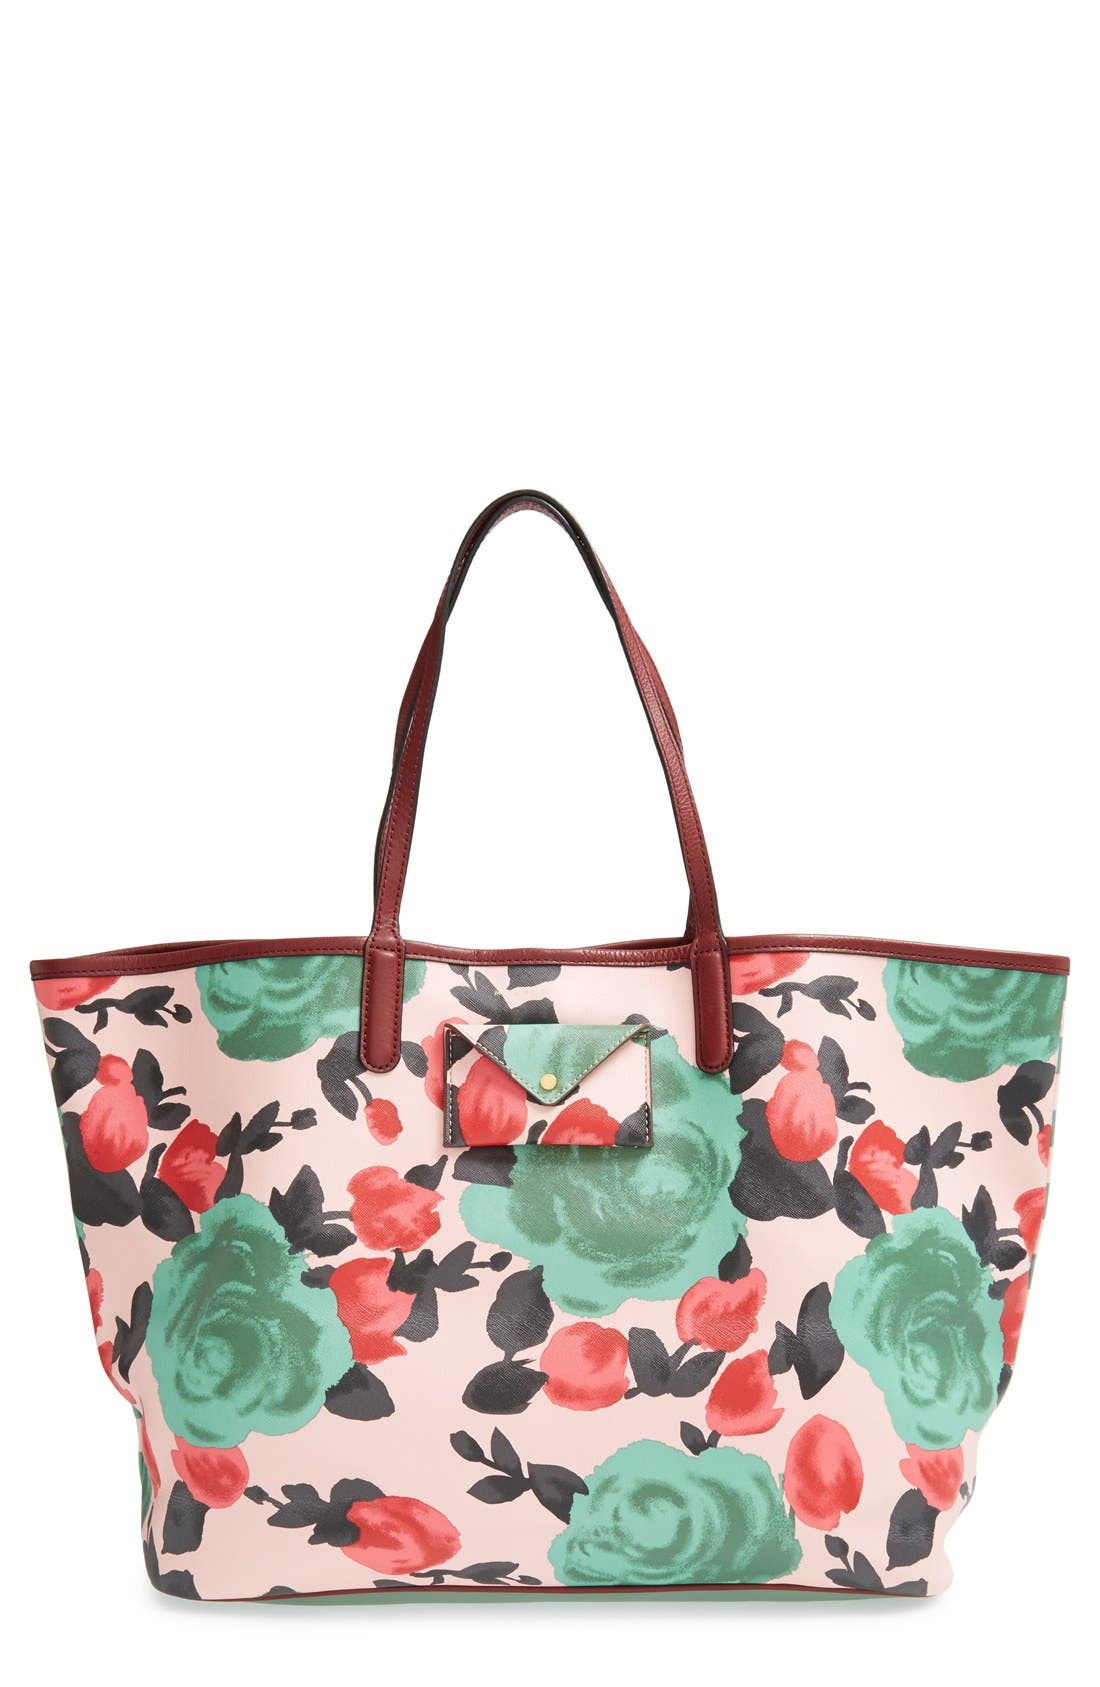 MARC JACOBS MARC BY MARC JACOBS Large Beach Tote, Main, color, 650